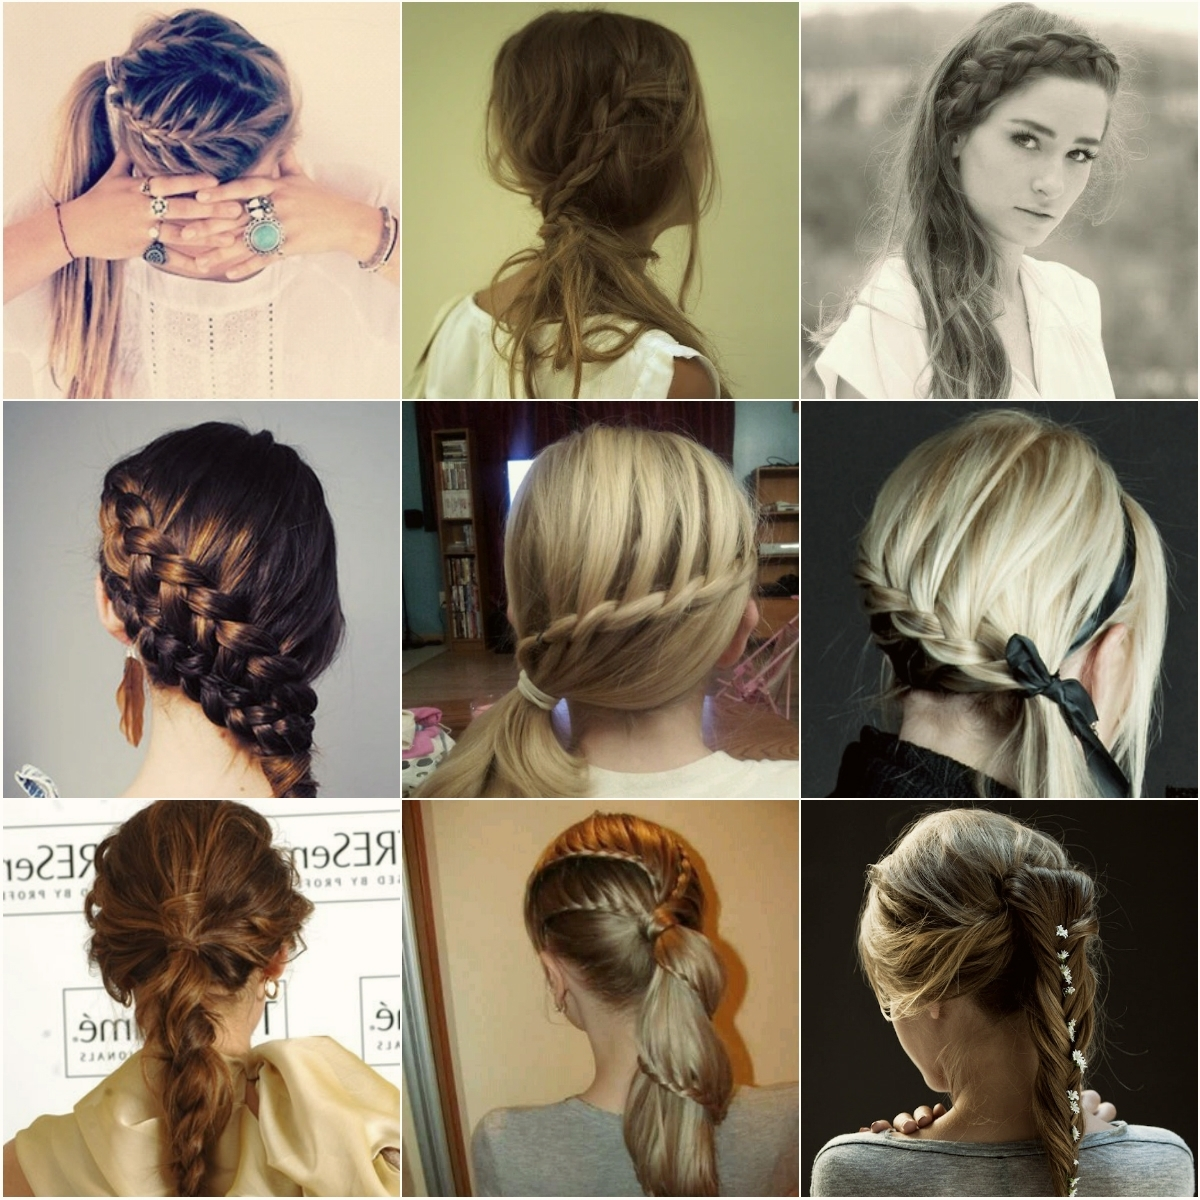 5 Long Prom Night Hairstyles Just For You – Vpfashion Inside Fashionable Braided Hairstyles For Homecoming (View 15 of 15)